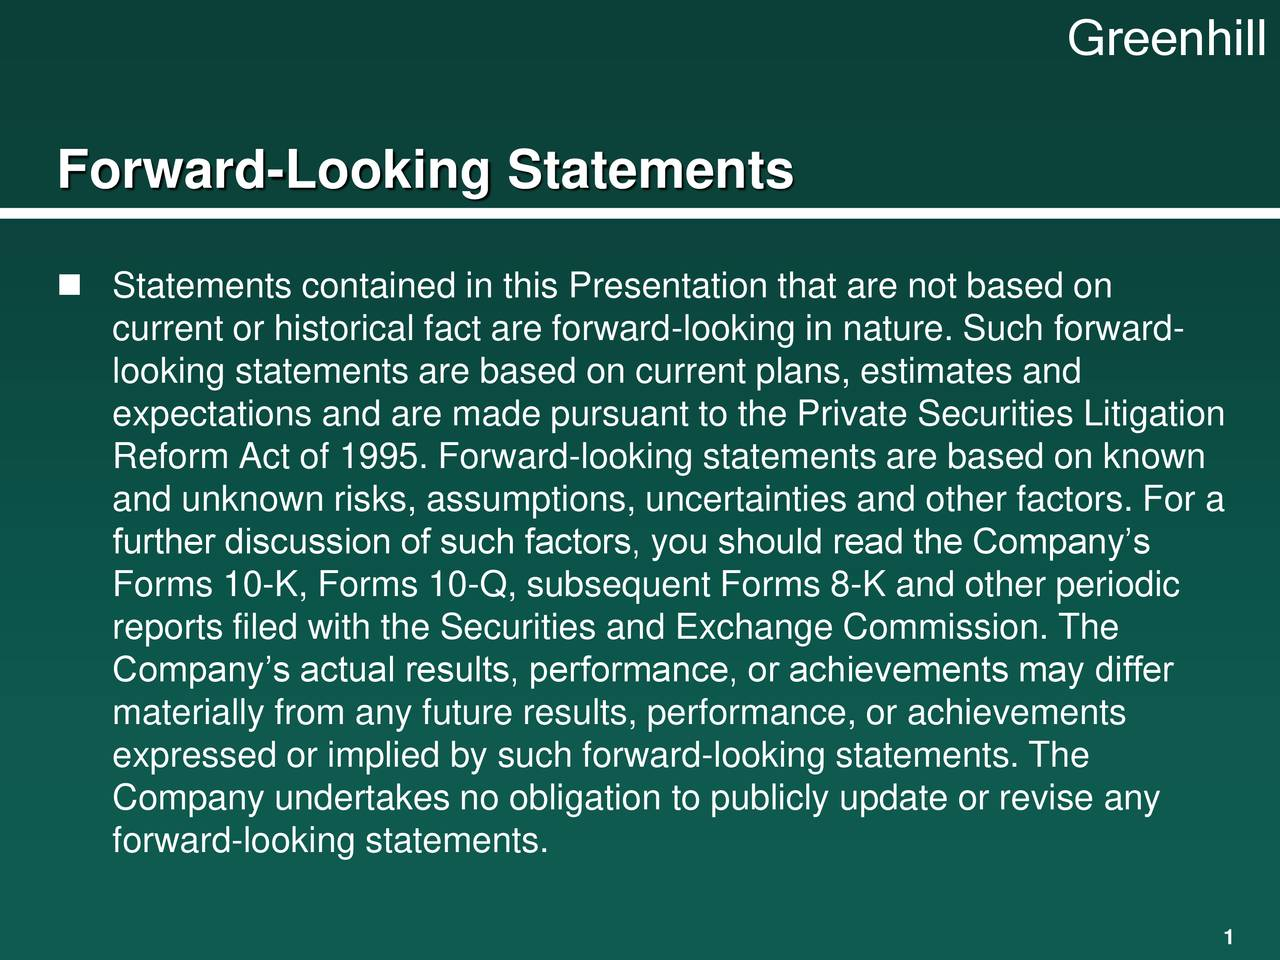 Forward-Looking Statements  Statements contained in this Presentation that are not based on current or historical fact are forward-looking in nature. Such forward- looking statements are based on current plans, estimates and expectations and are made pursuant to the Private Securities Litigation Reform Act of 1995. Forward-looking statements are based on known and unknown risks, assumptions, uncertainties and other factors. For a further discussion of such factors, you should read the Company's Forms 10-K, Forms 10-Q, subsequent Forms 8-K and other periodic reports filed with the Securities and Exchange Commission. The Company's actual results, performance, or achievements may differ materially from any future results, performance, or achievements expressed or implied by such forward-looking statements. The Company undertakes no obligation to publicly update or revise any forward-looking statements.